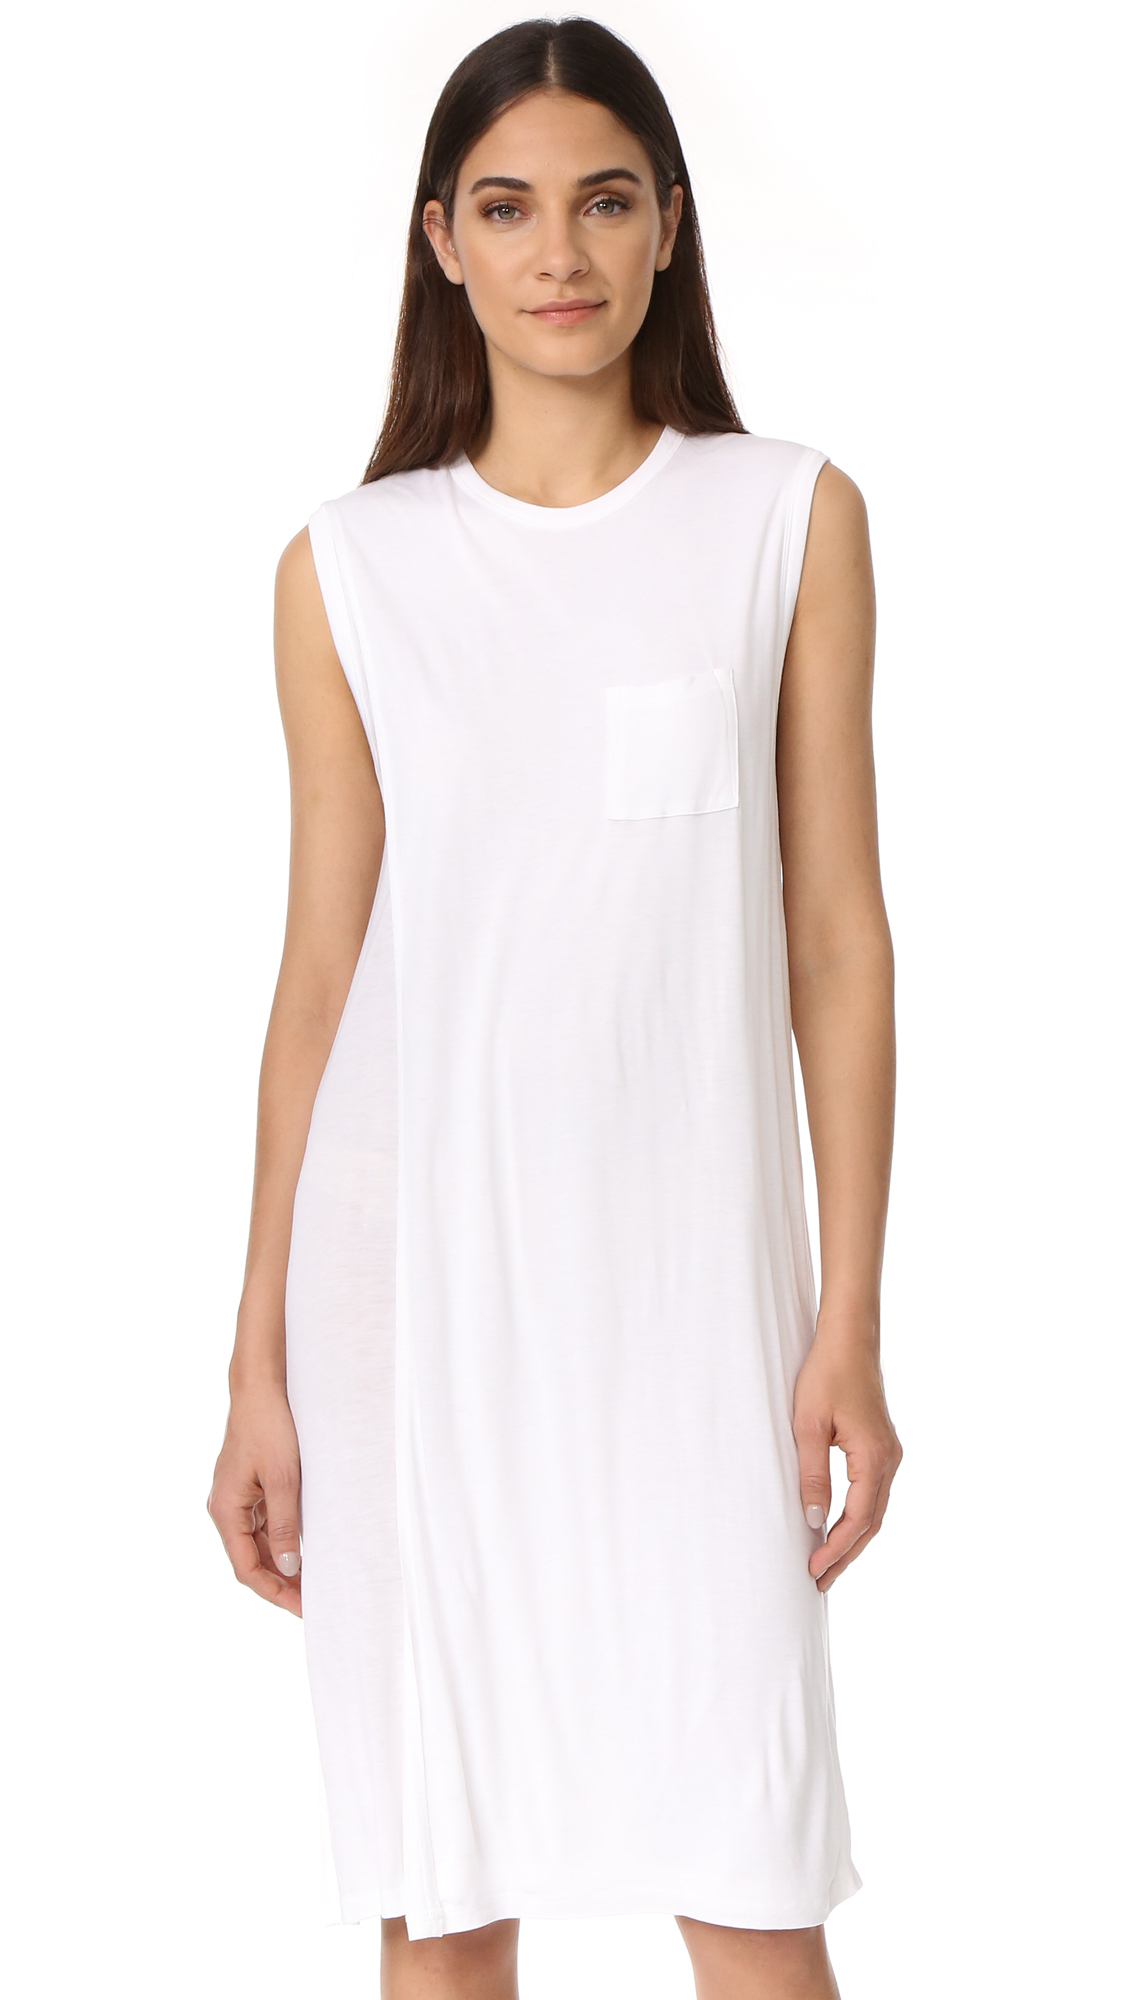 T by Alexander Wang Classic Overlap Dress with Pocket - White